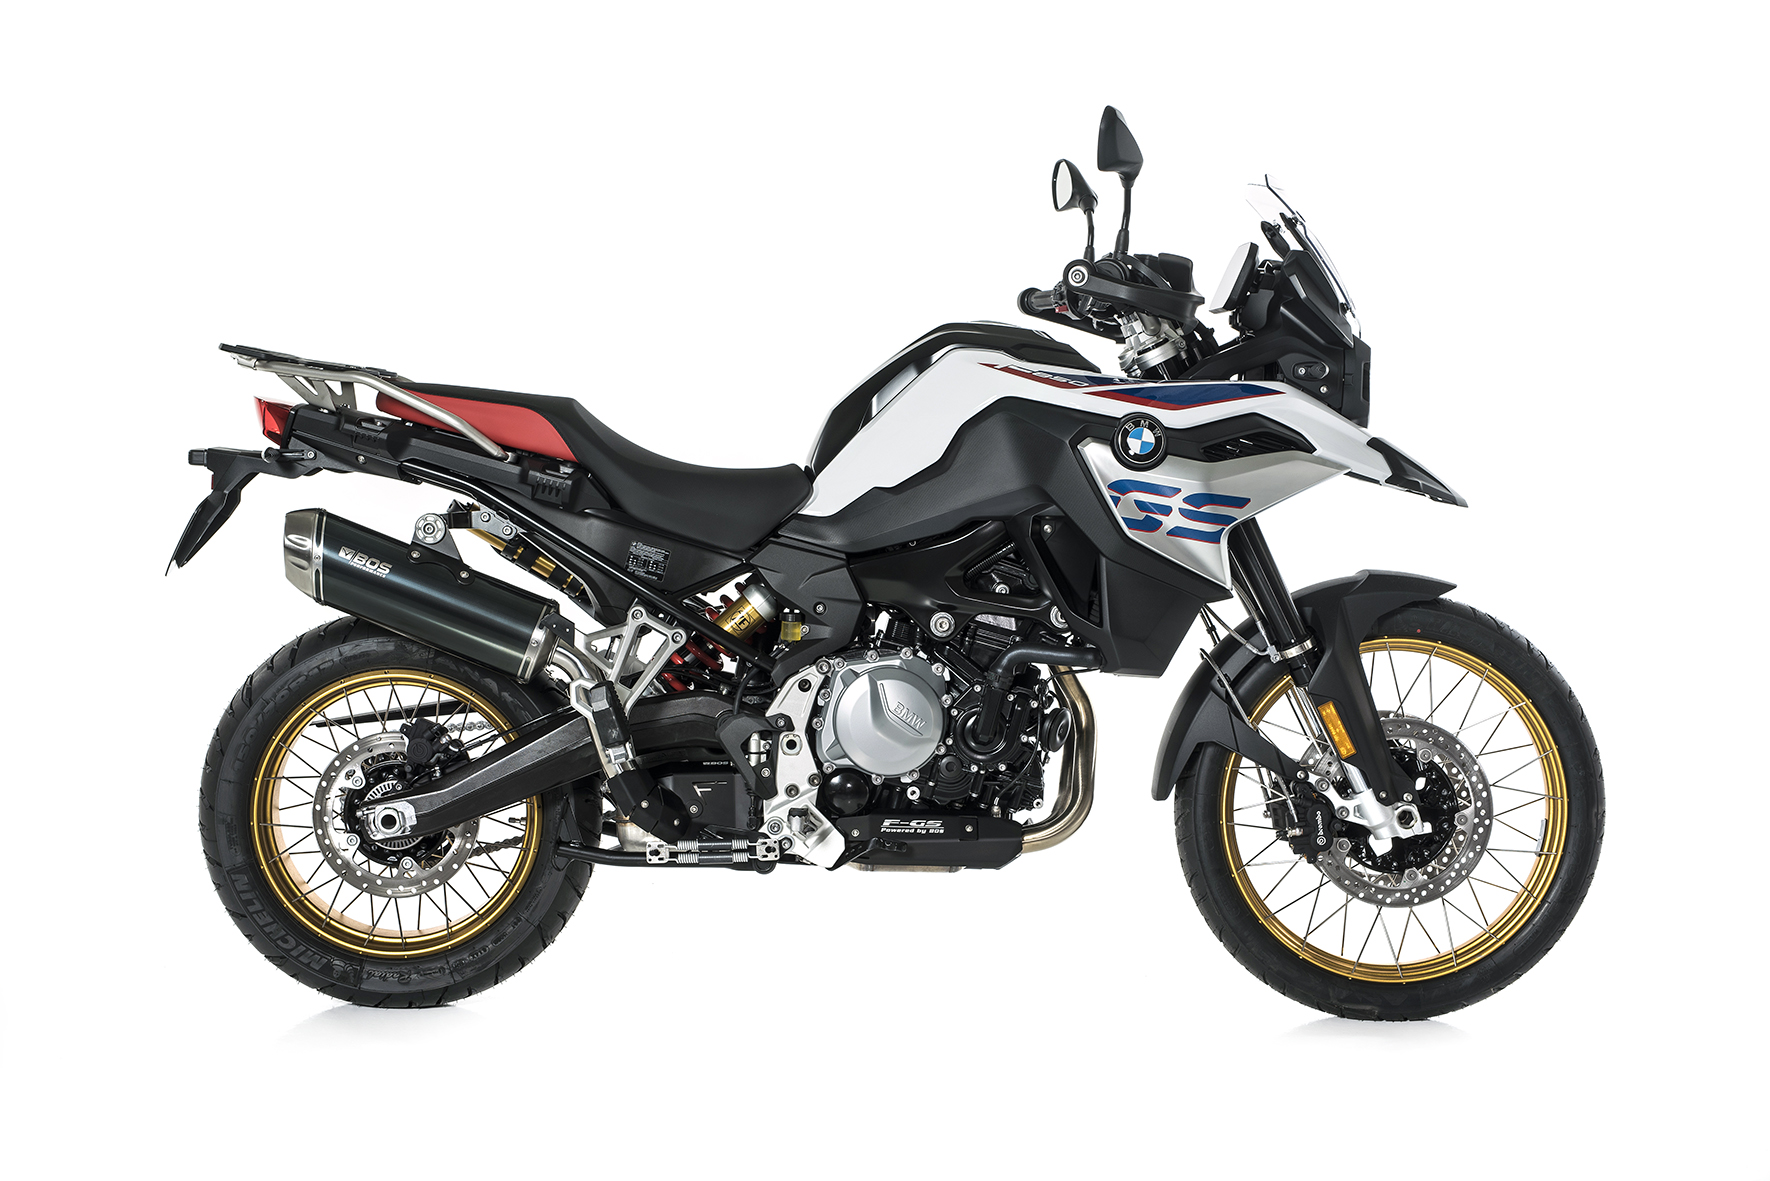 F 750 GS / F 850 GS Dune Fox Slip-on Euro 4 16